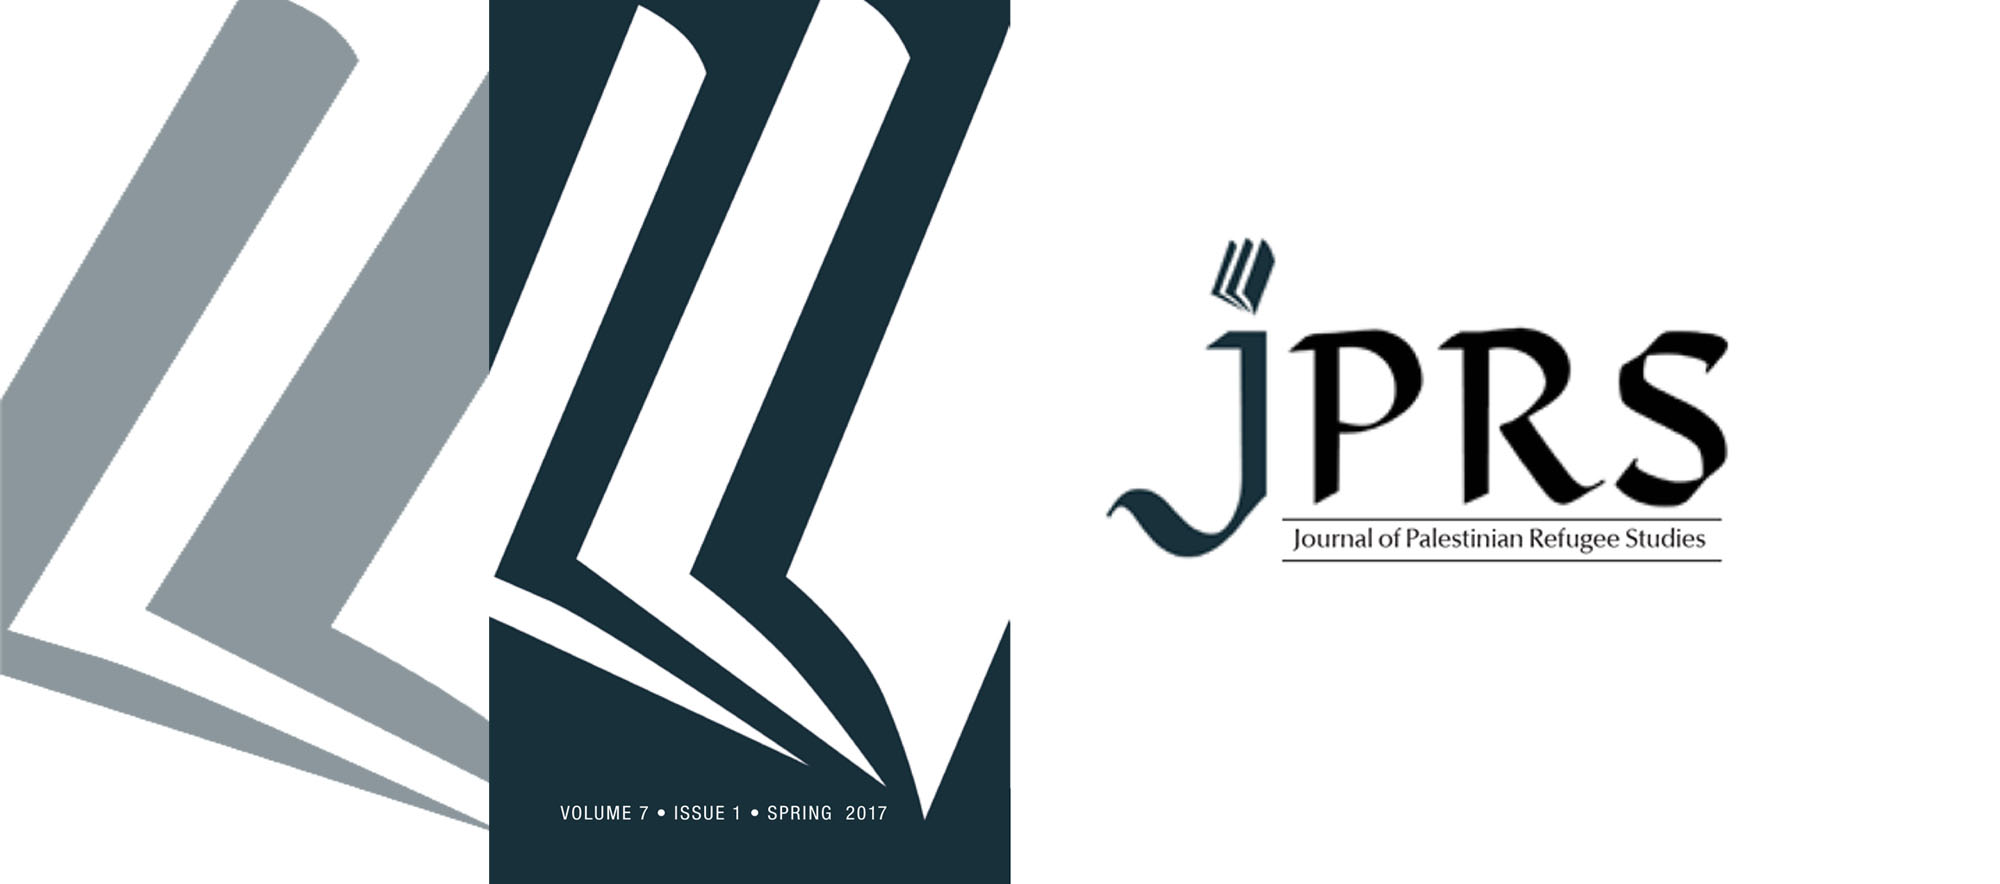 New Issue of the Journal of Palestinian Refugee Studies